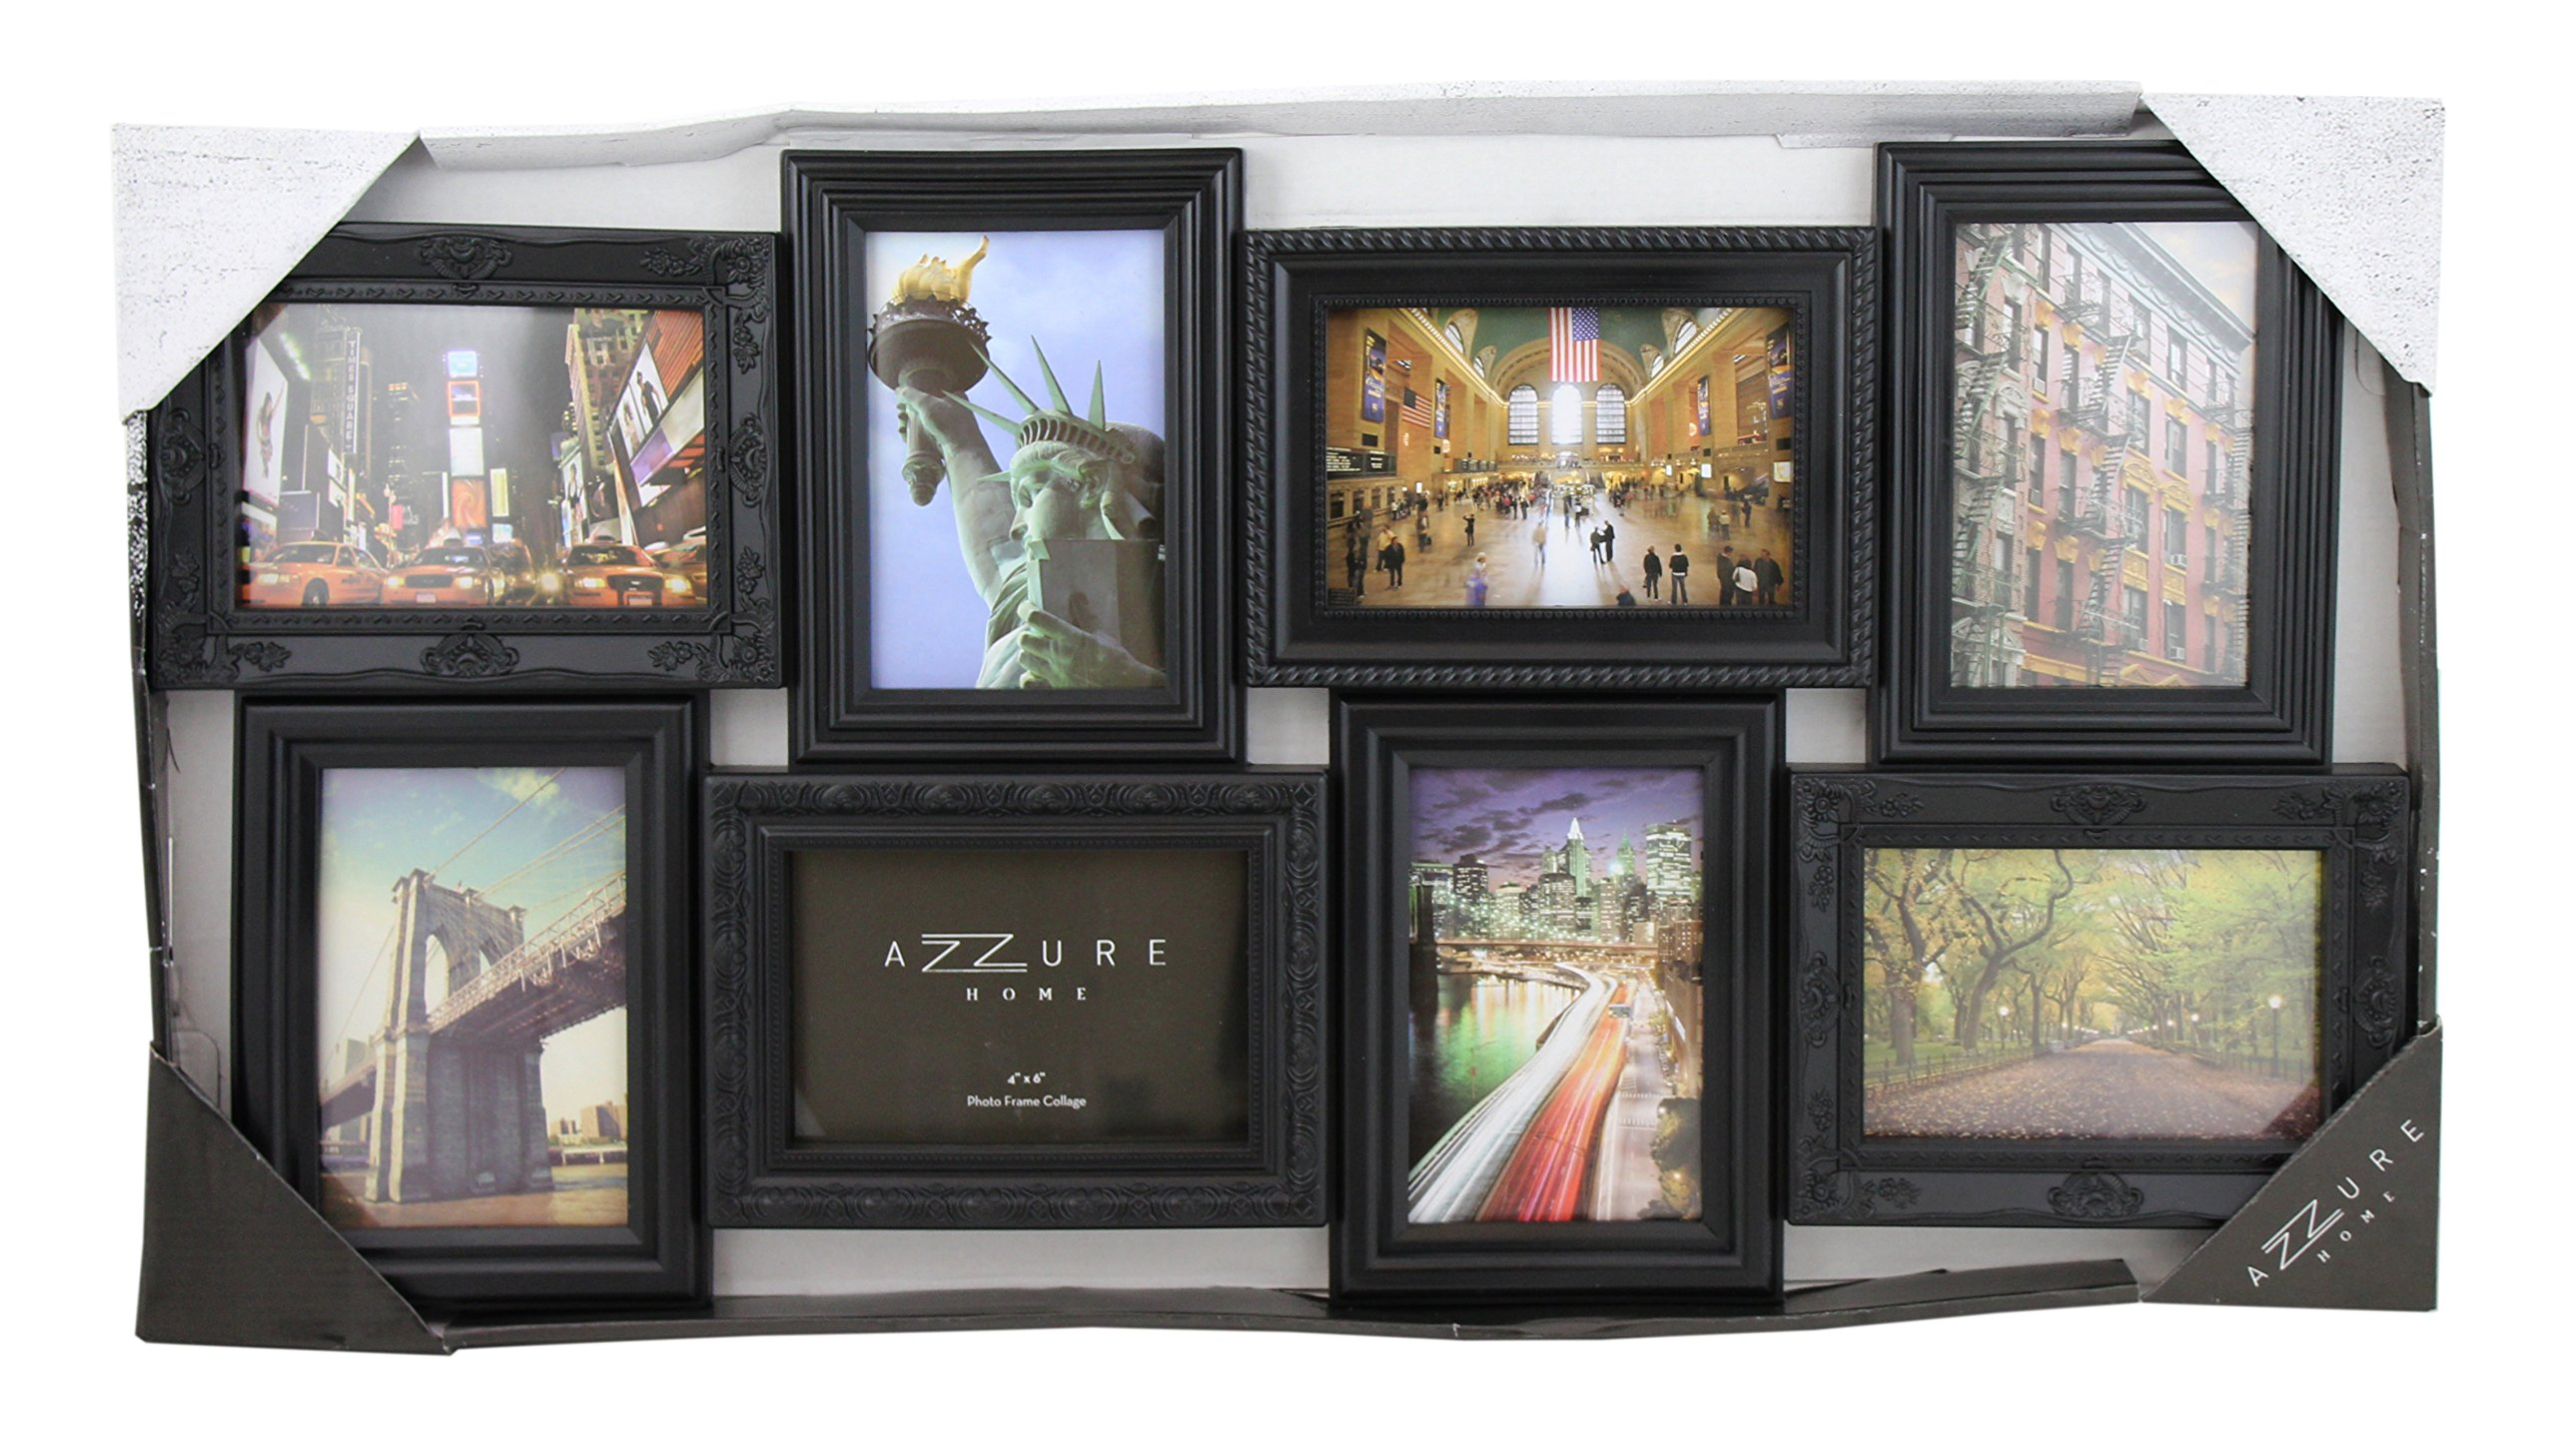 Azzure Home 8 Openings Decorative Wall Hanging Collage Picture Frame - Made to Display Four 5x7 and Four 4x6 Photos, Black